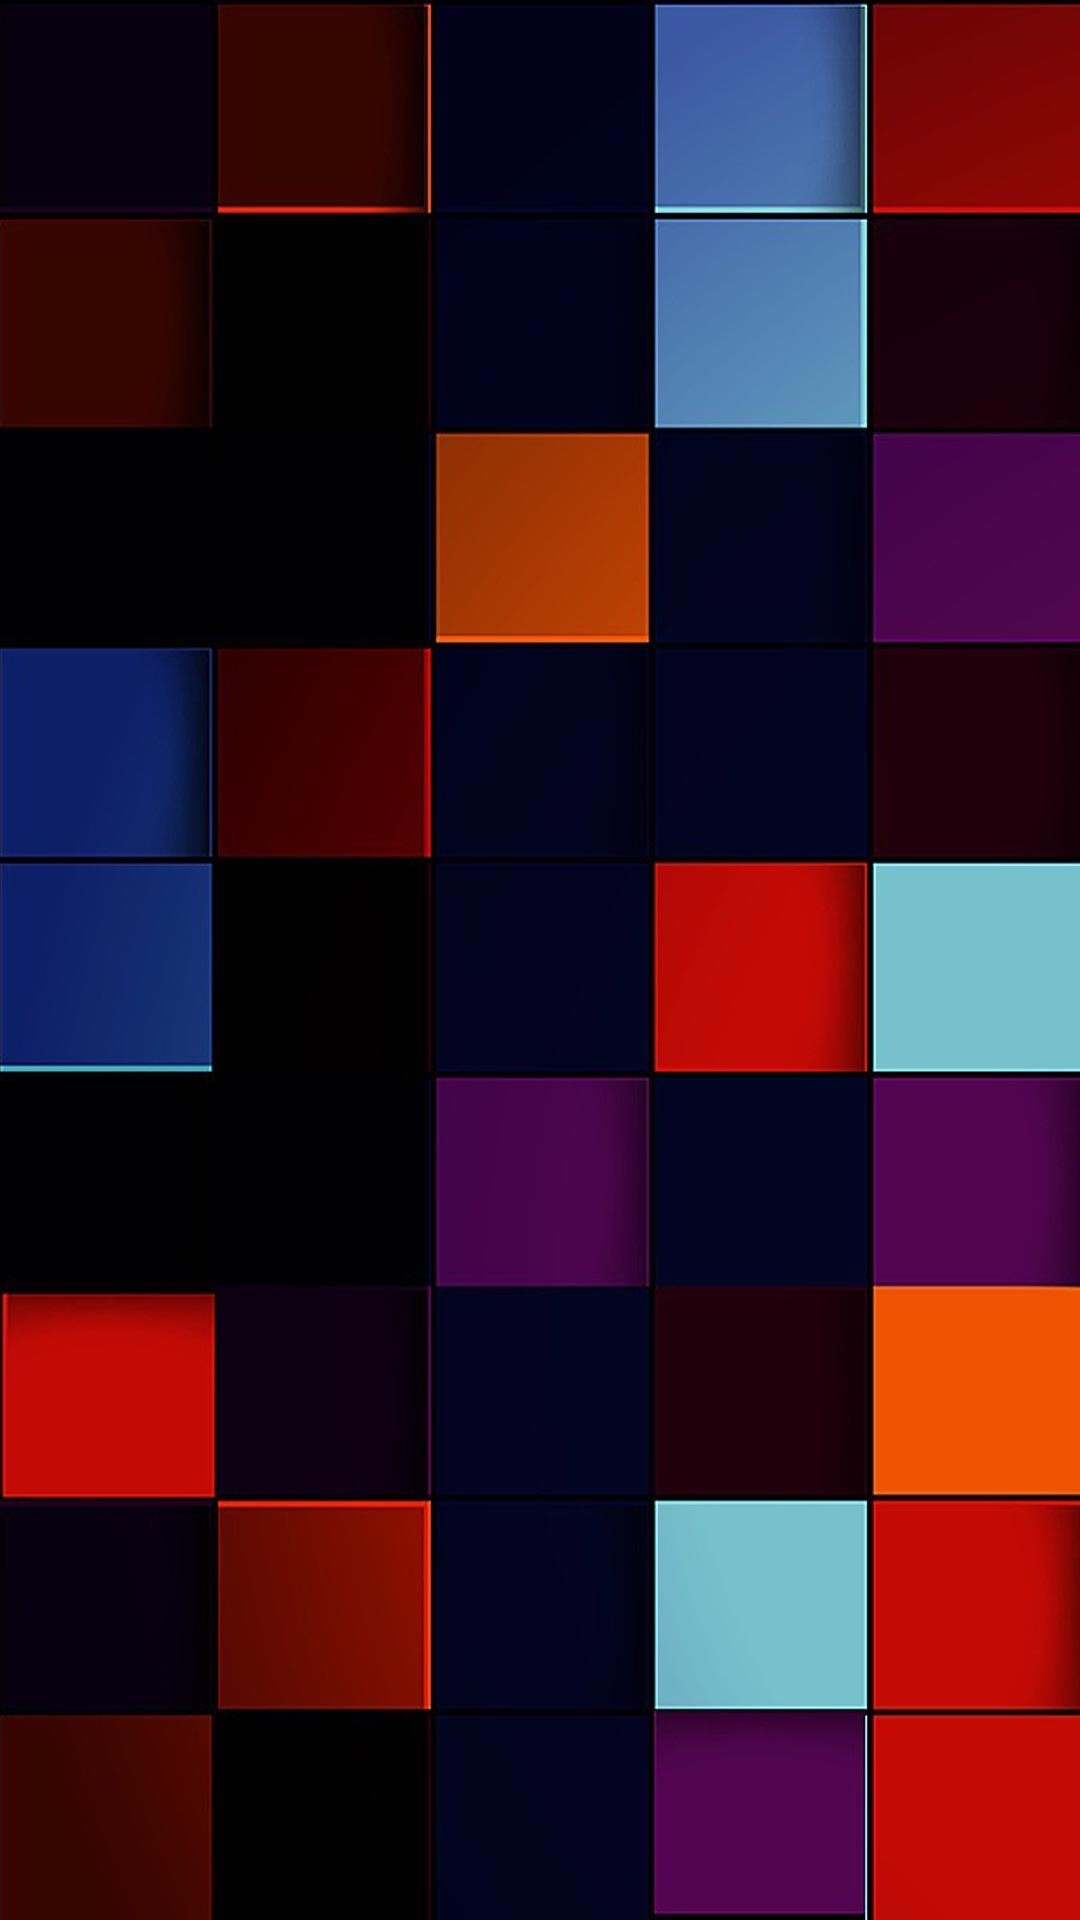 Abstract geometric wallpapers 75 images - Geometric wallpaper colorful ...